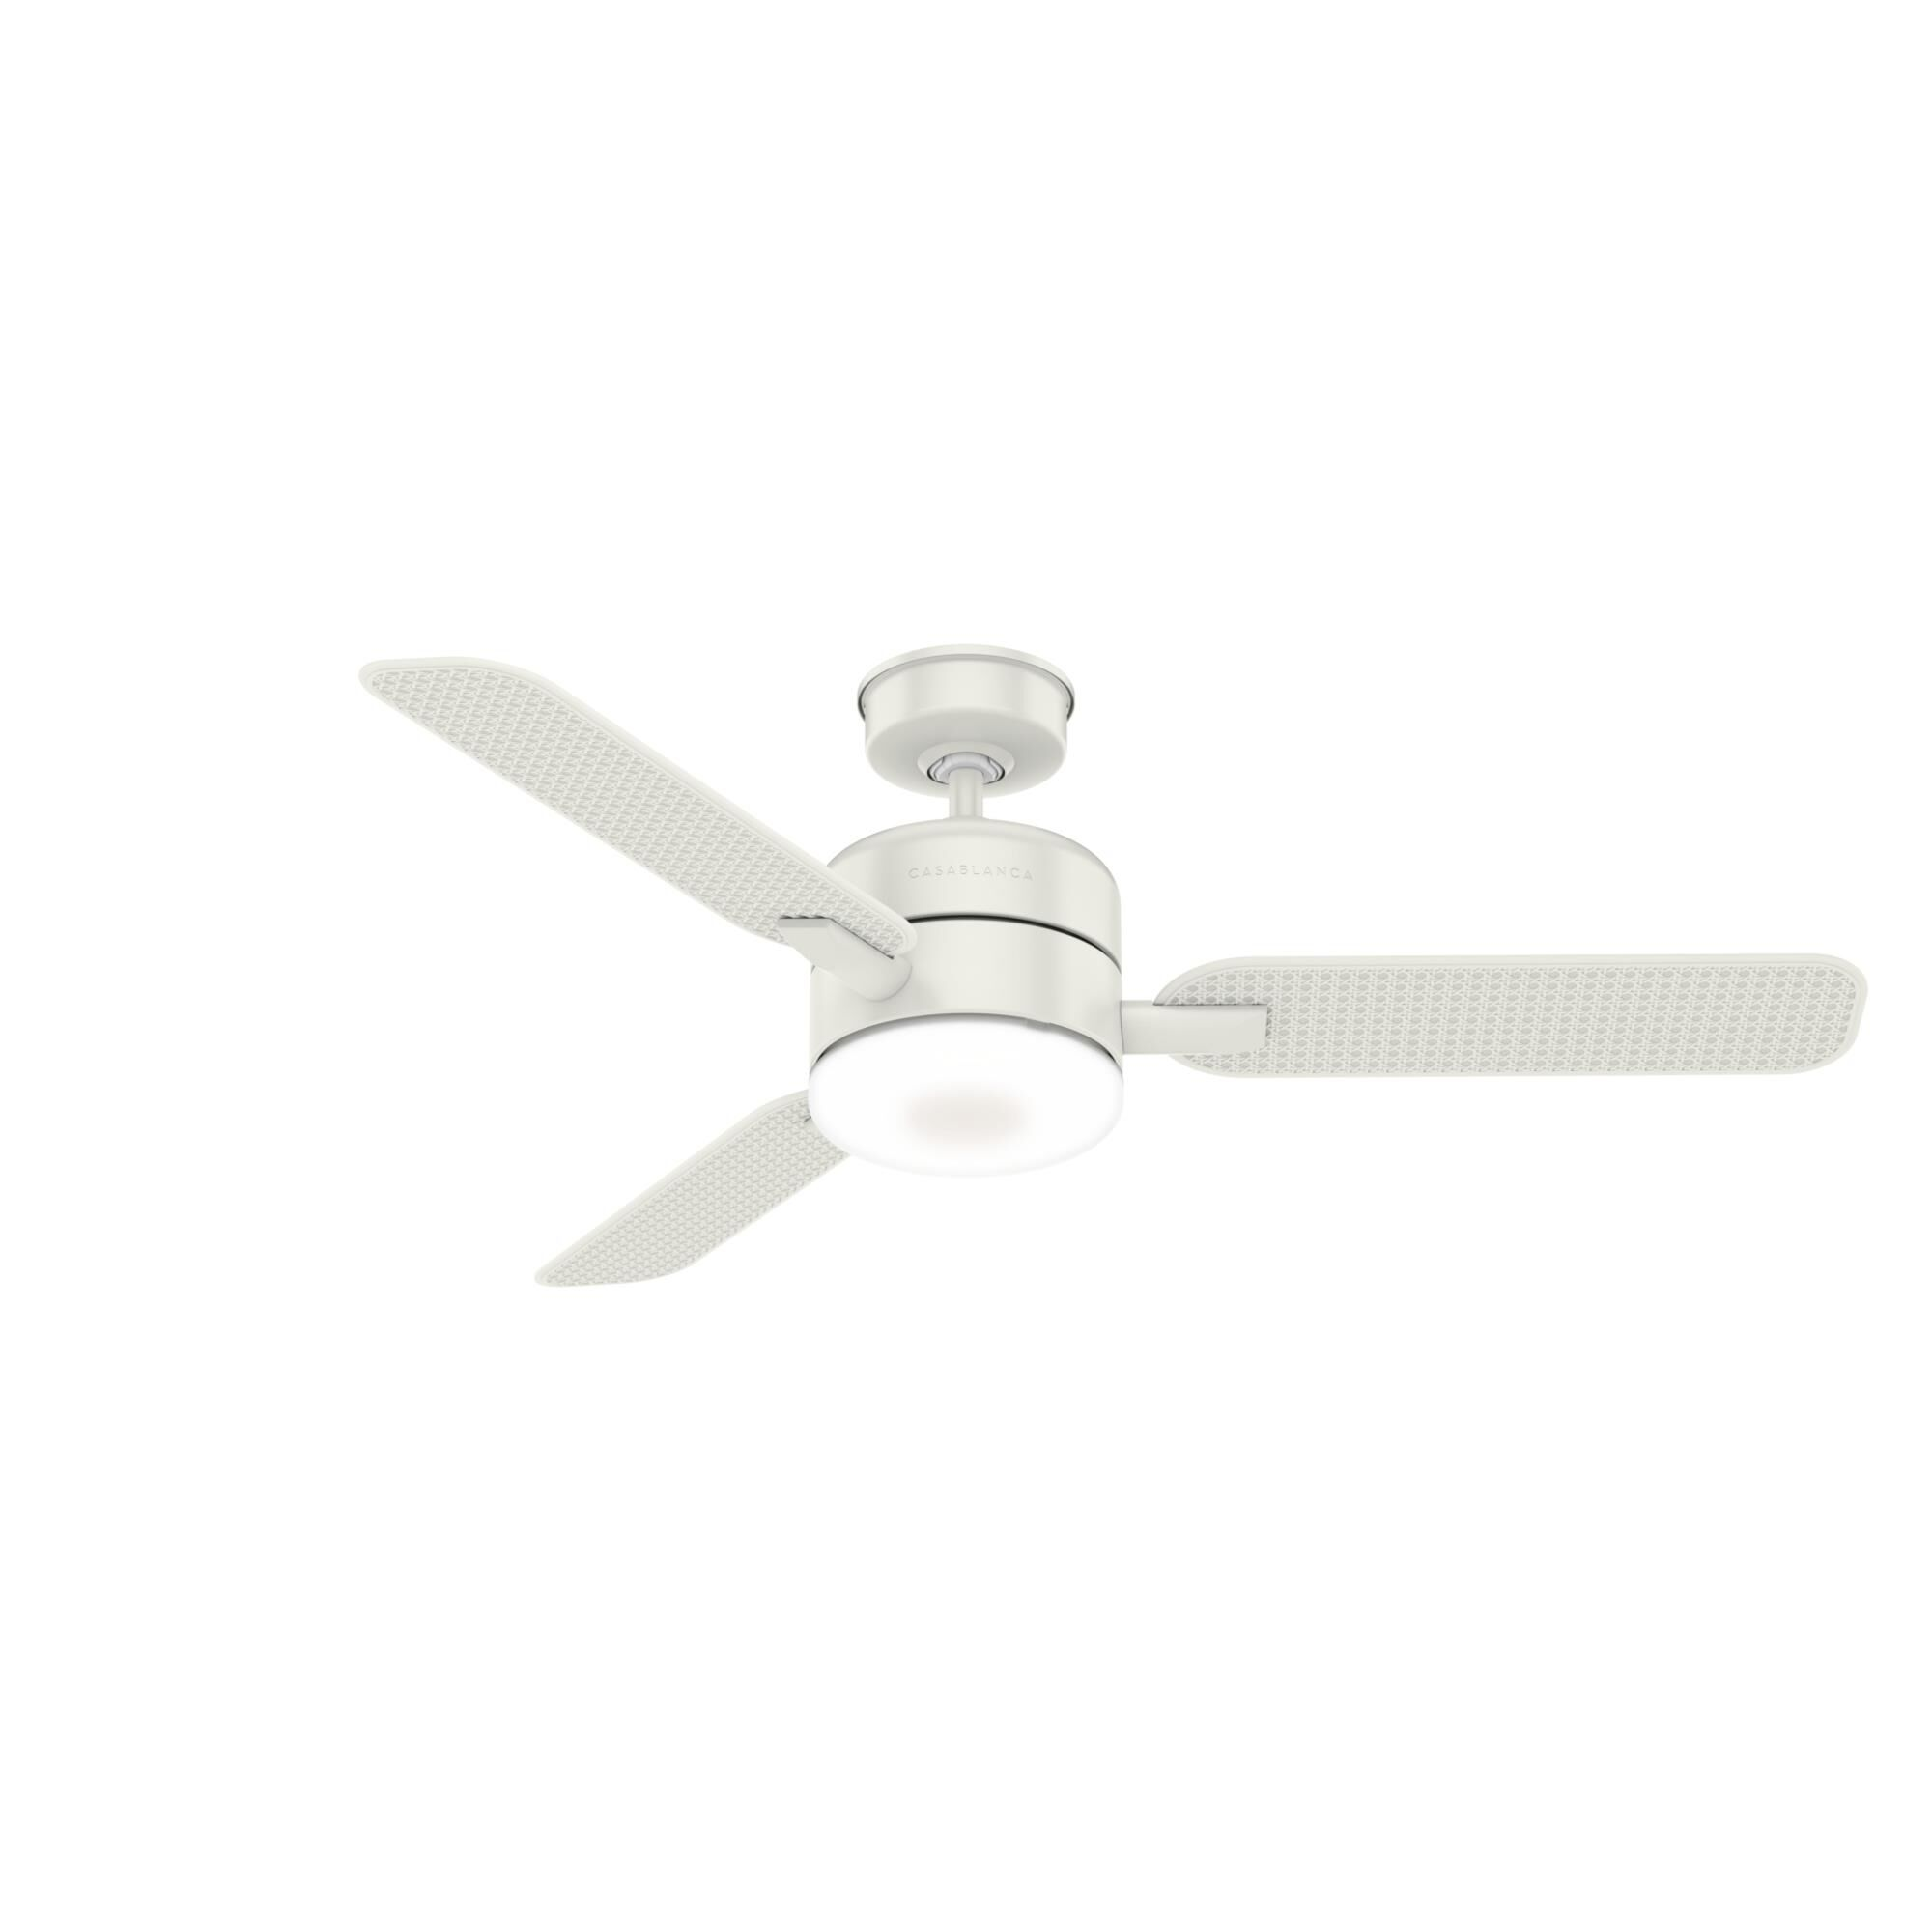 Casablanca Fan Company Paume Outdoor Rated 54 Inch Ceiling Fan With Light Kit Paume - 59427 - Modern Contemporary